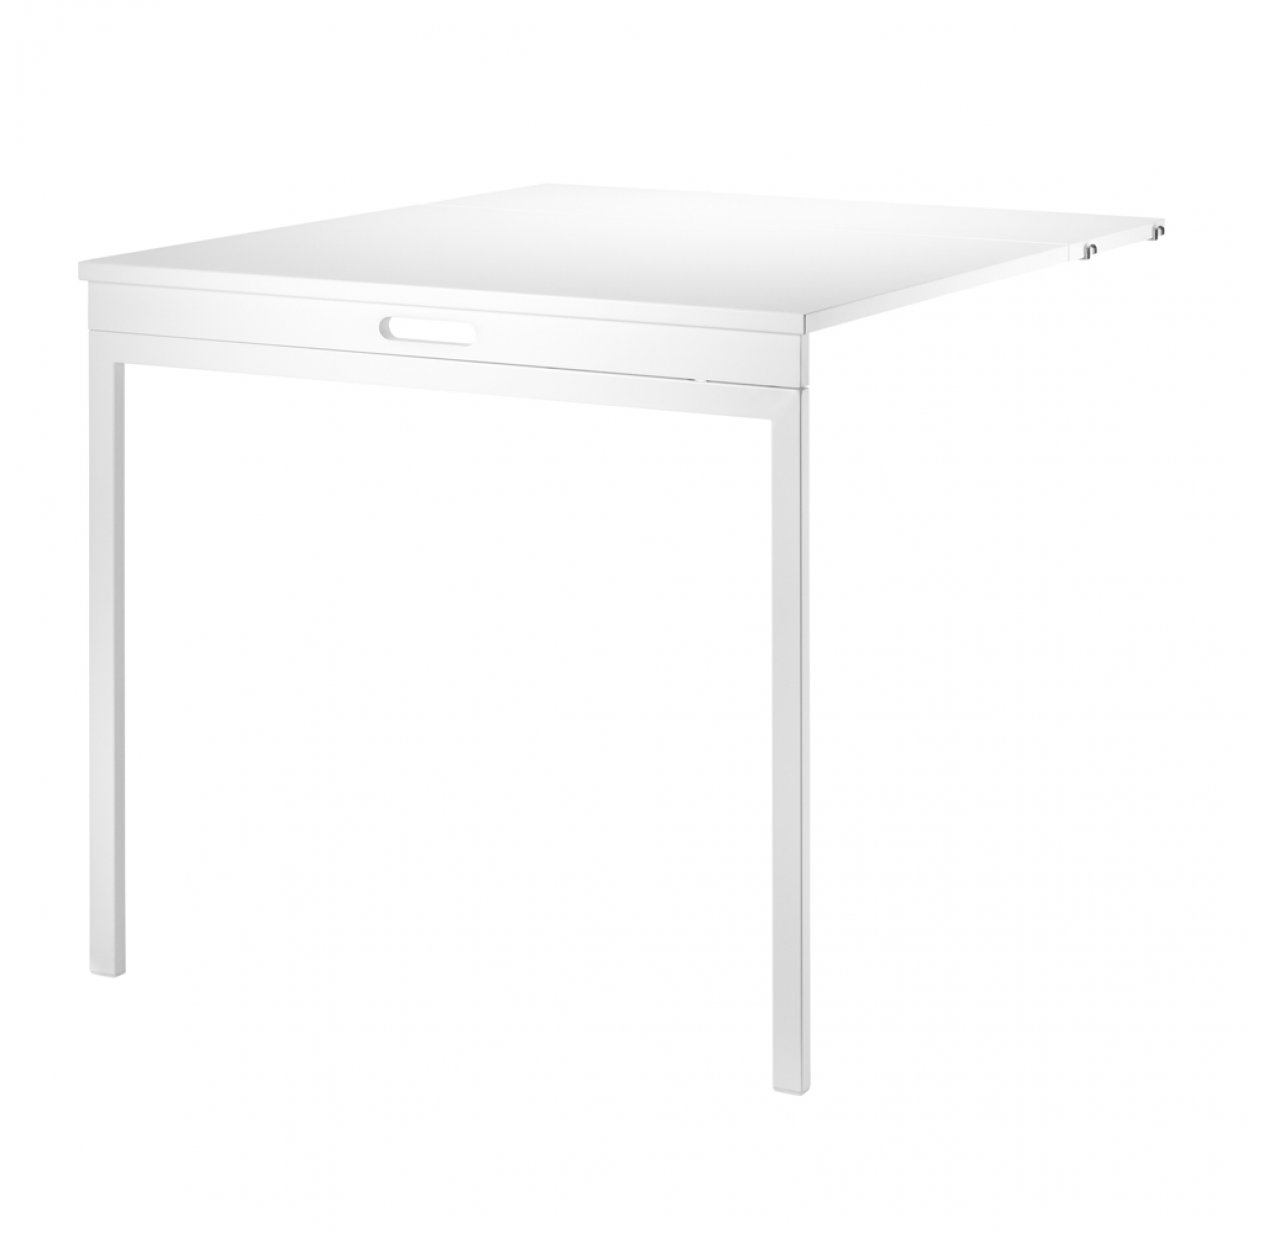 Table murale pliante - Blanc